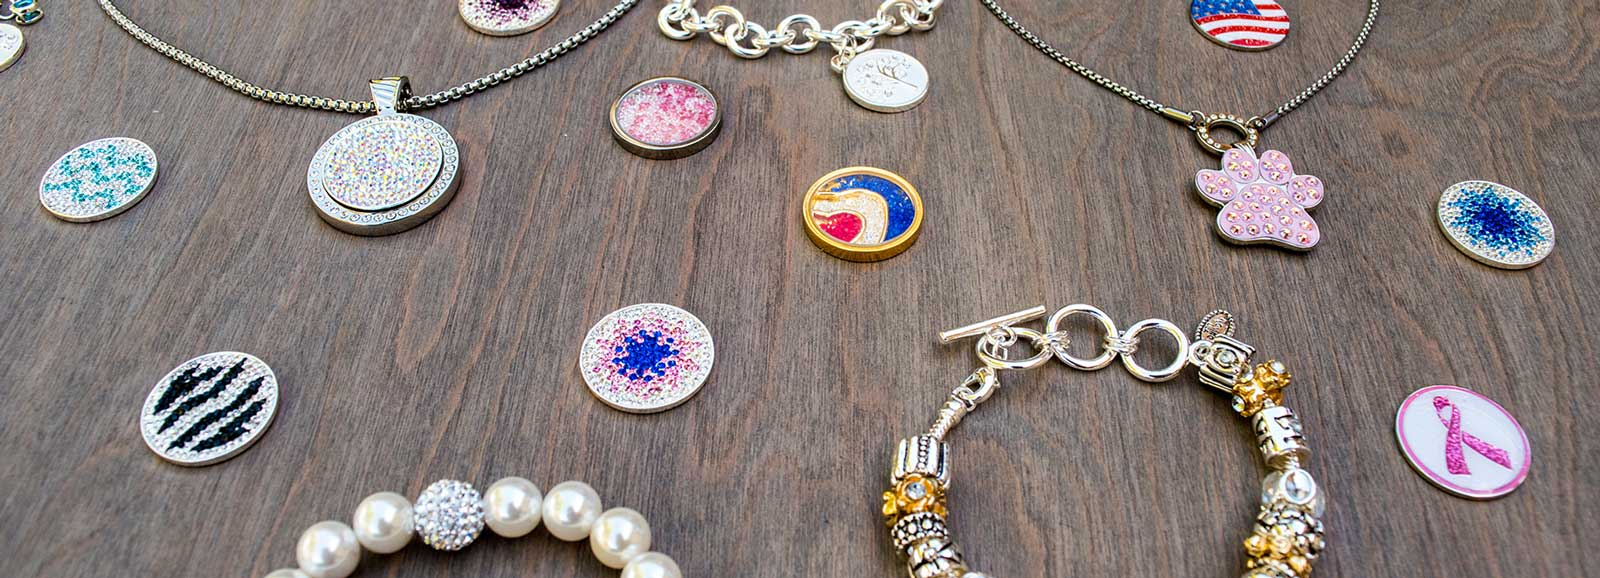 Avalee's Glamour Jewelry features necklaces, bracelets, charms, earrings, and magnetic charm necklaces.